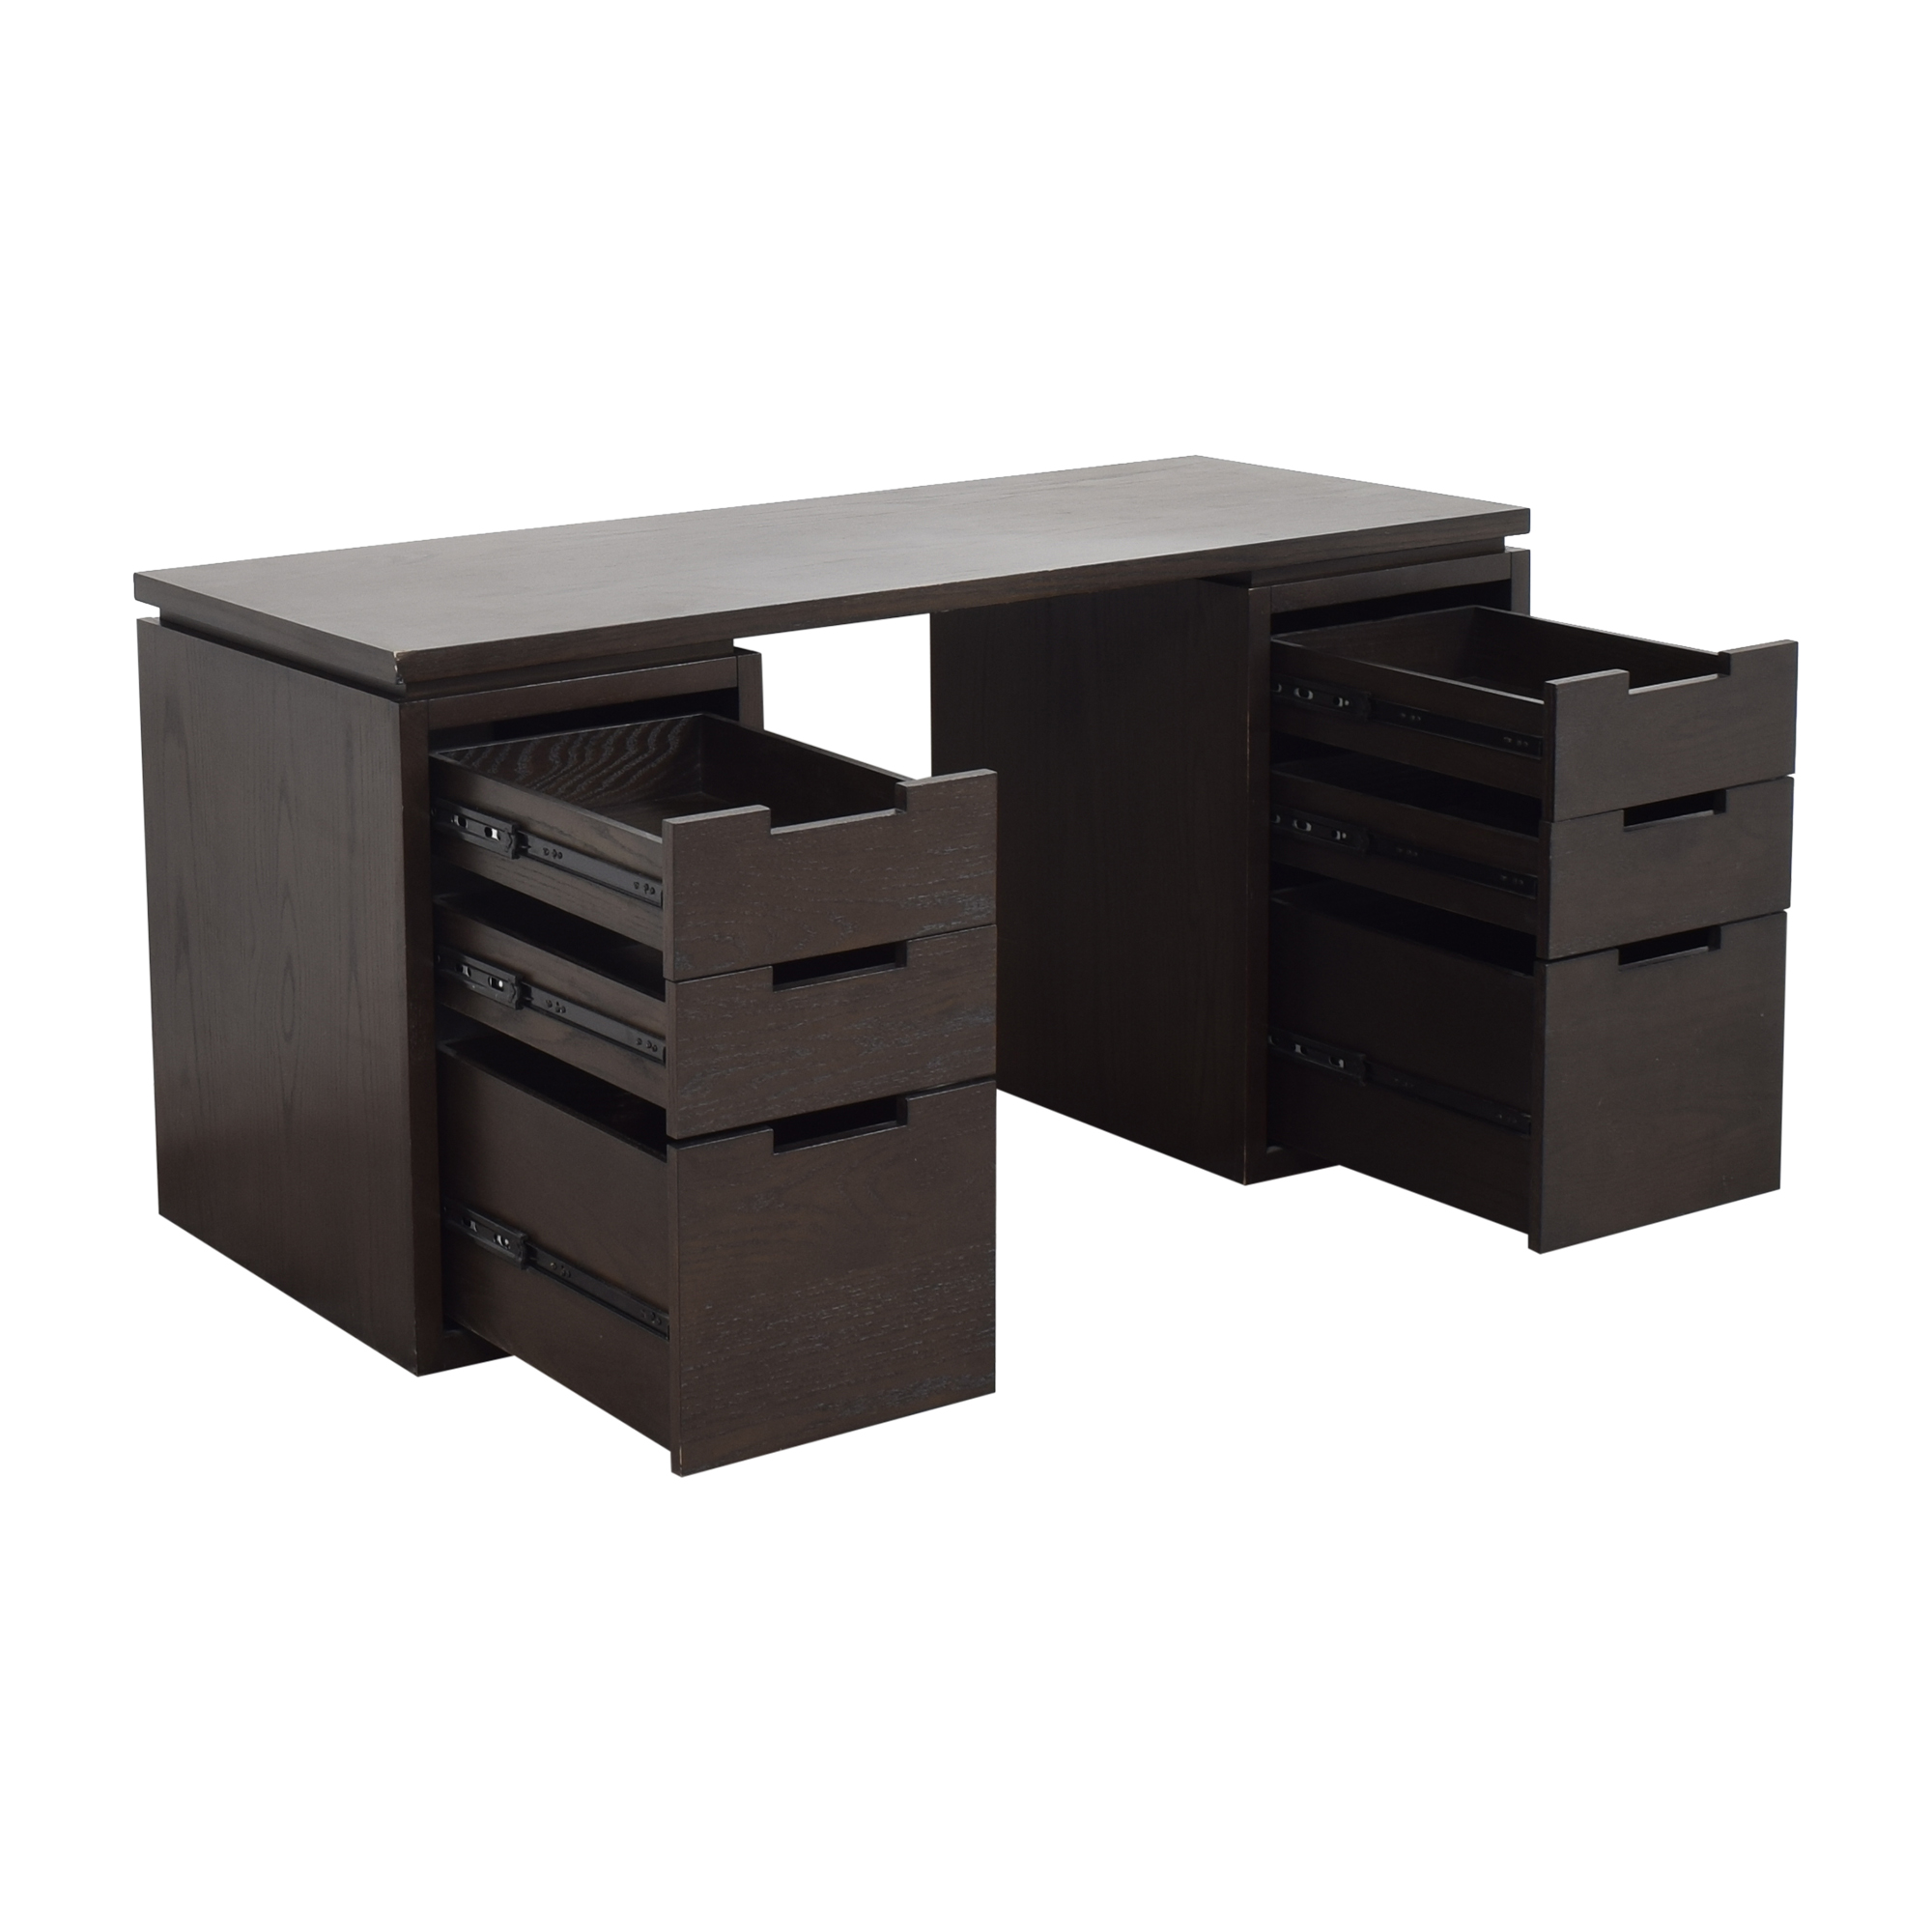 West Elm West Elm Modular Office Basic Desk nyc